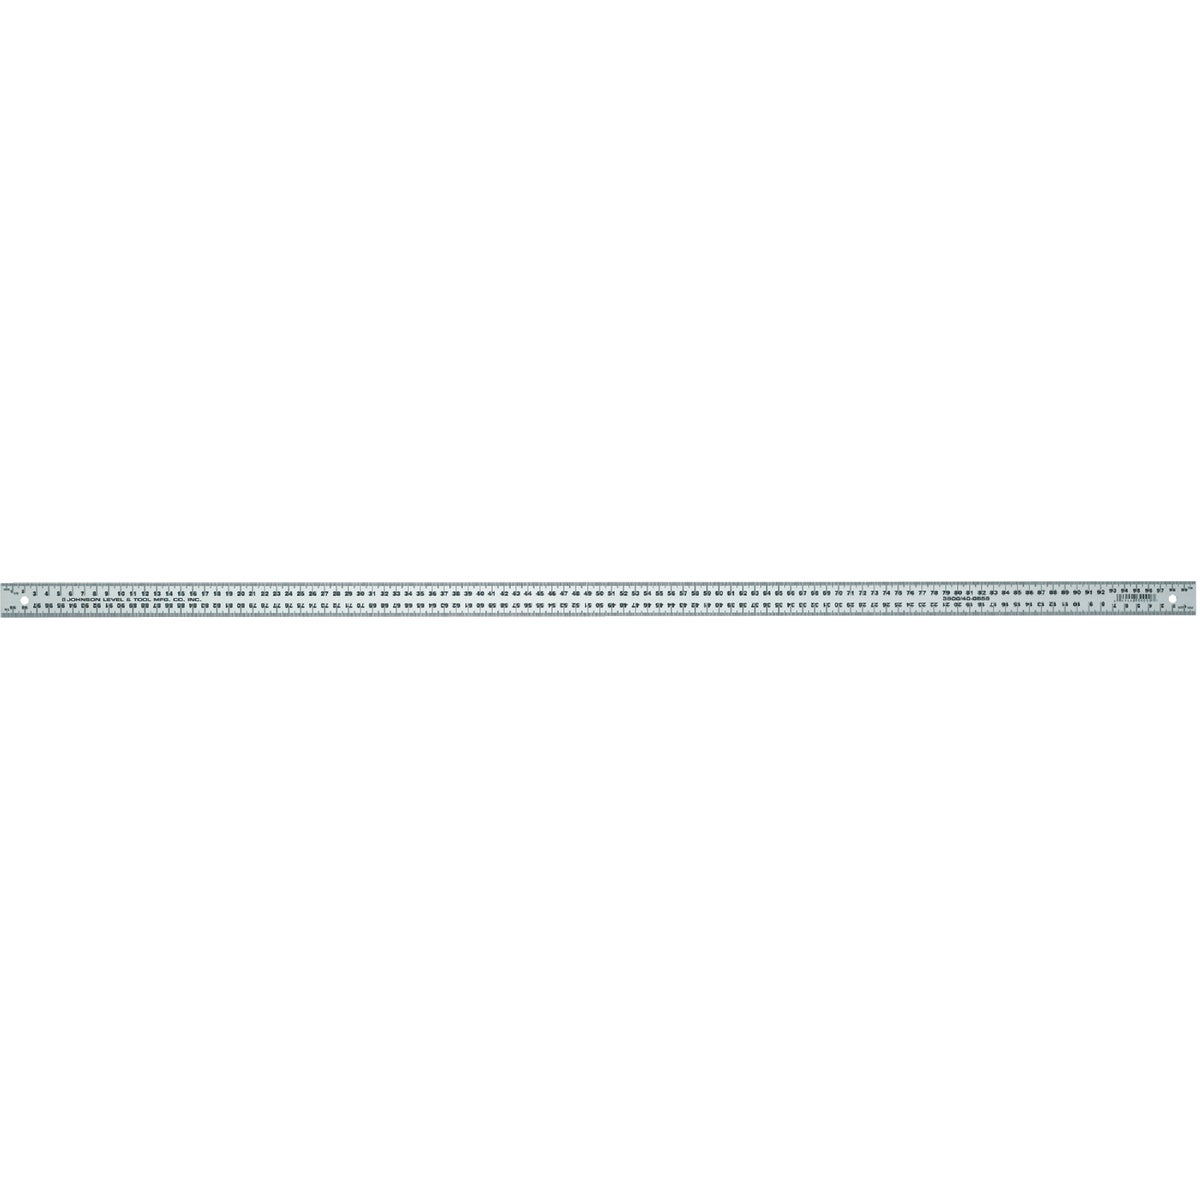 METRIC RULER - 3900 by Johnson Level & Tool